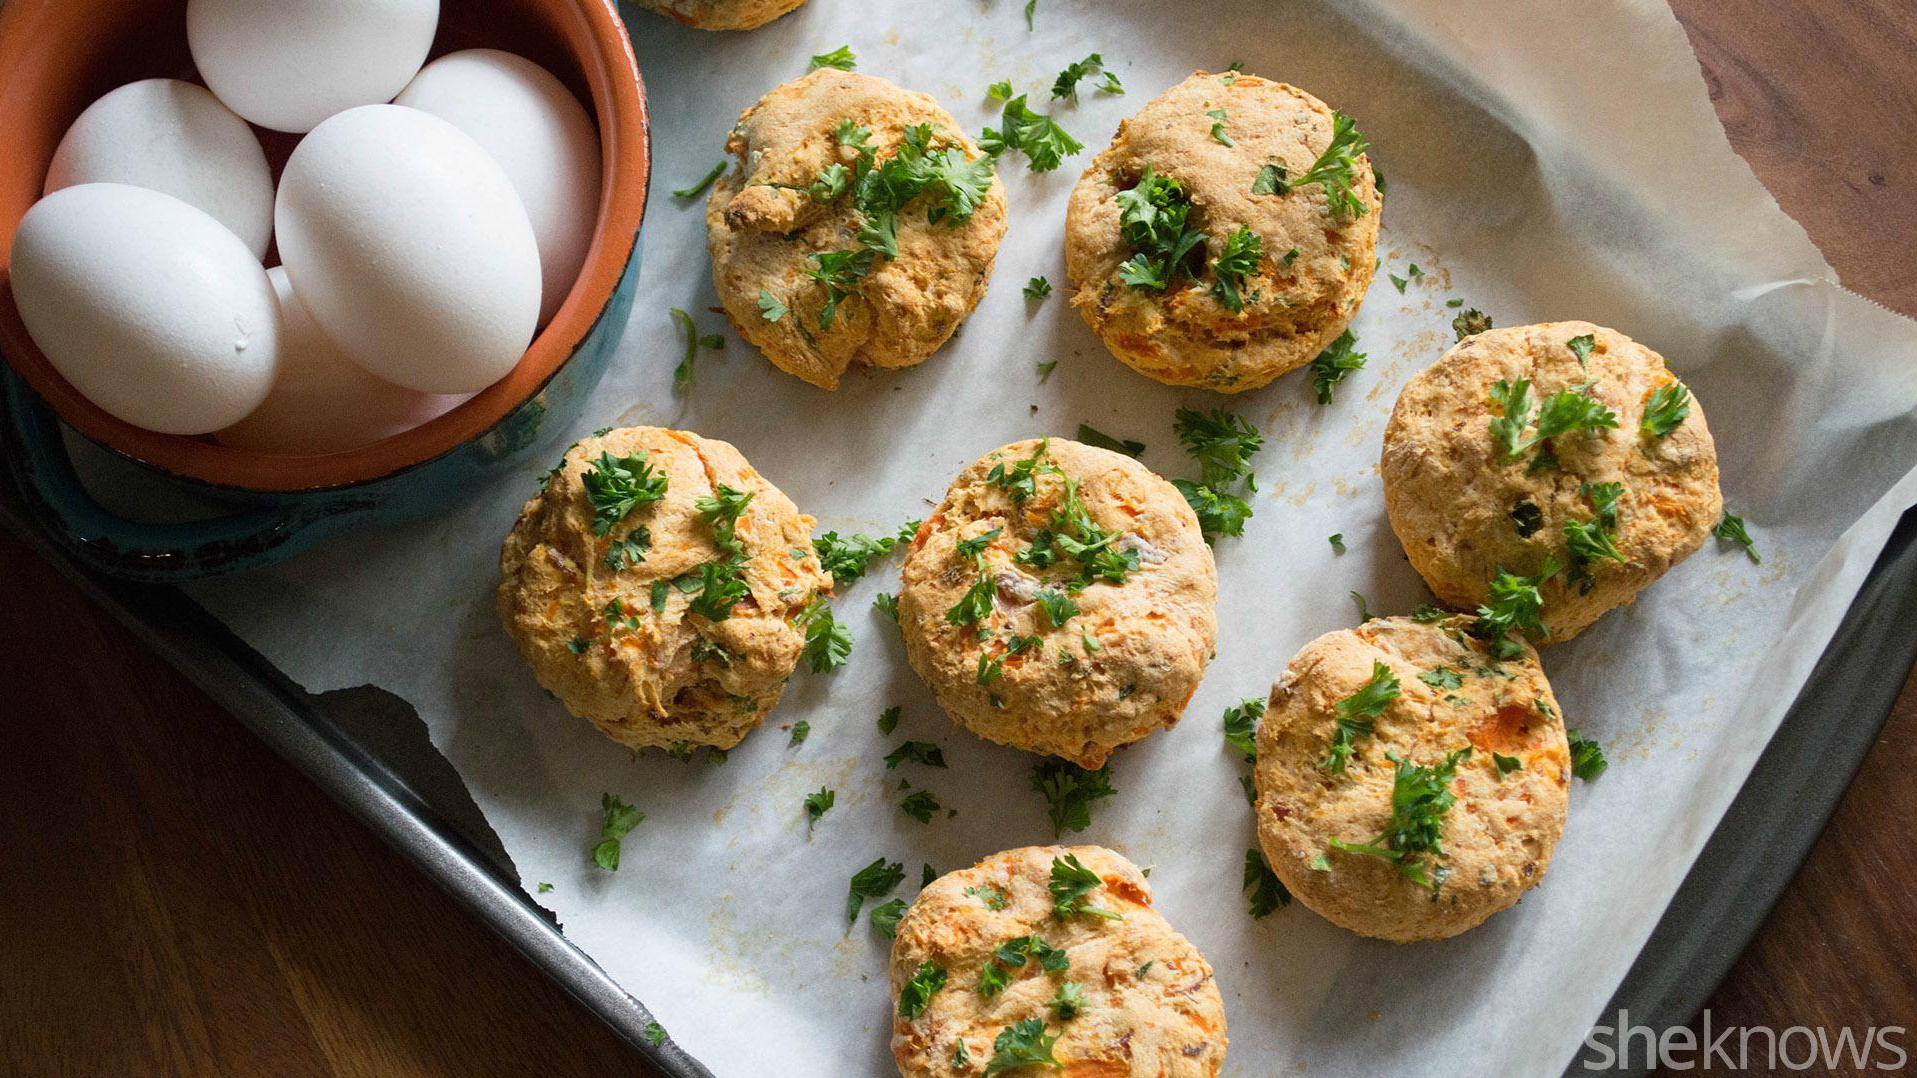 Sweet potato scones put a savory twist on a popular baked good